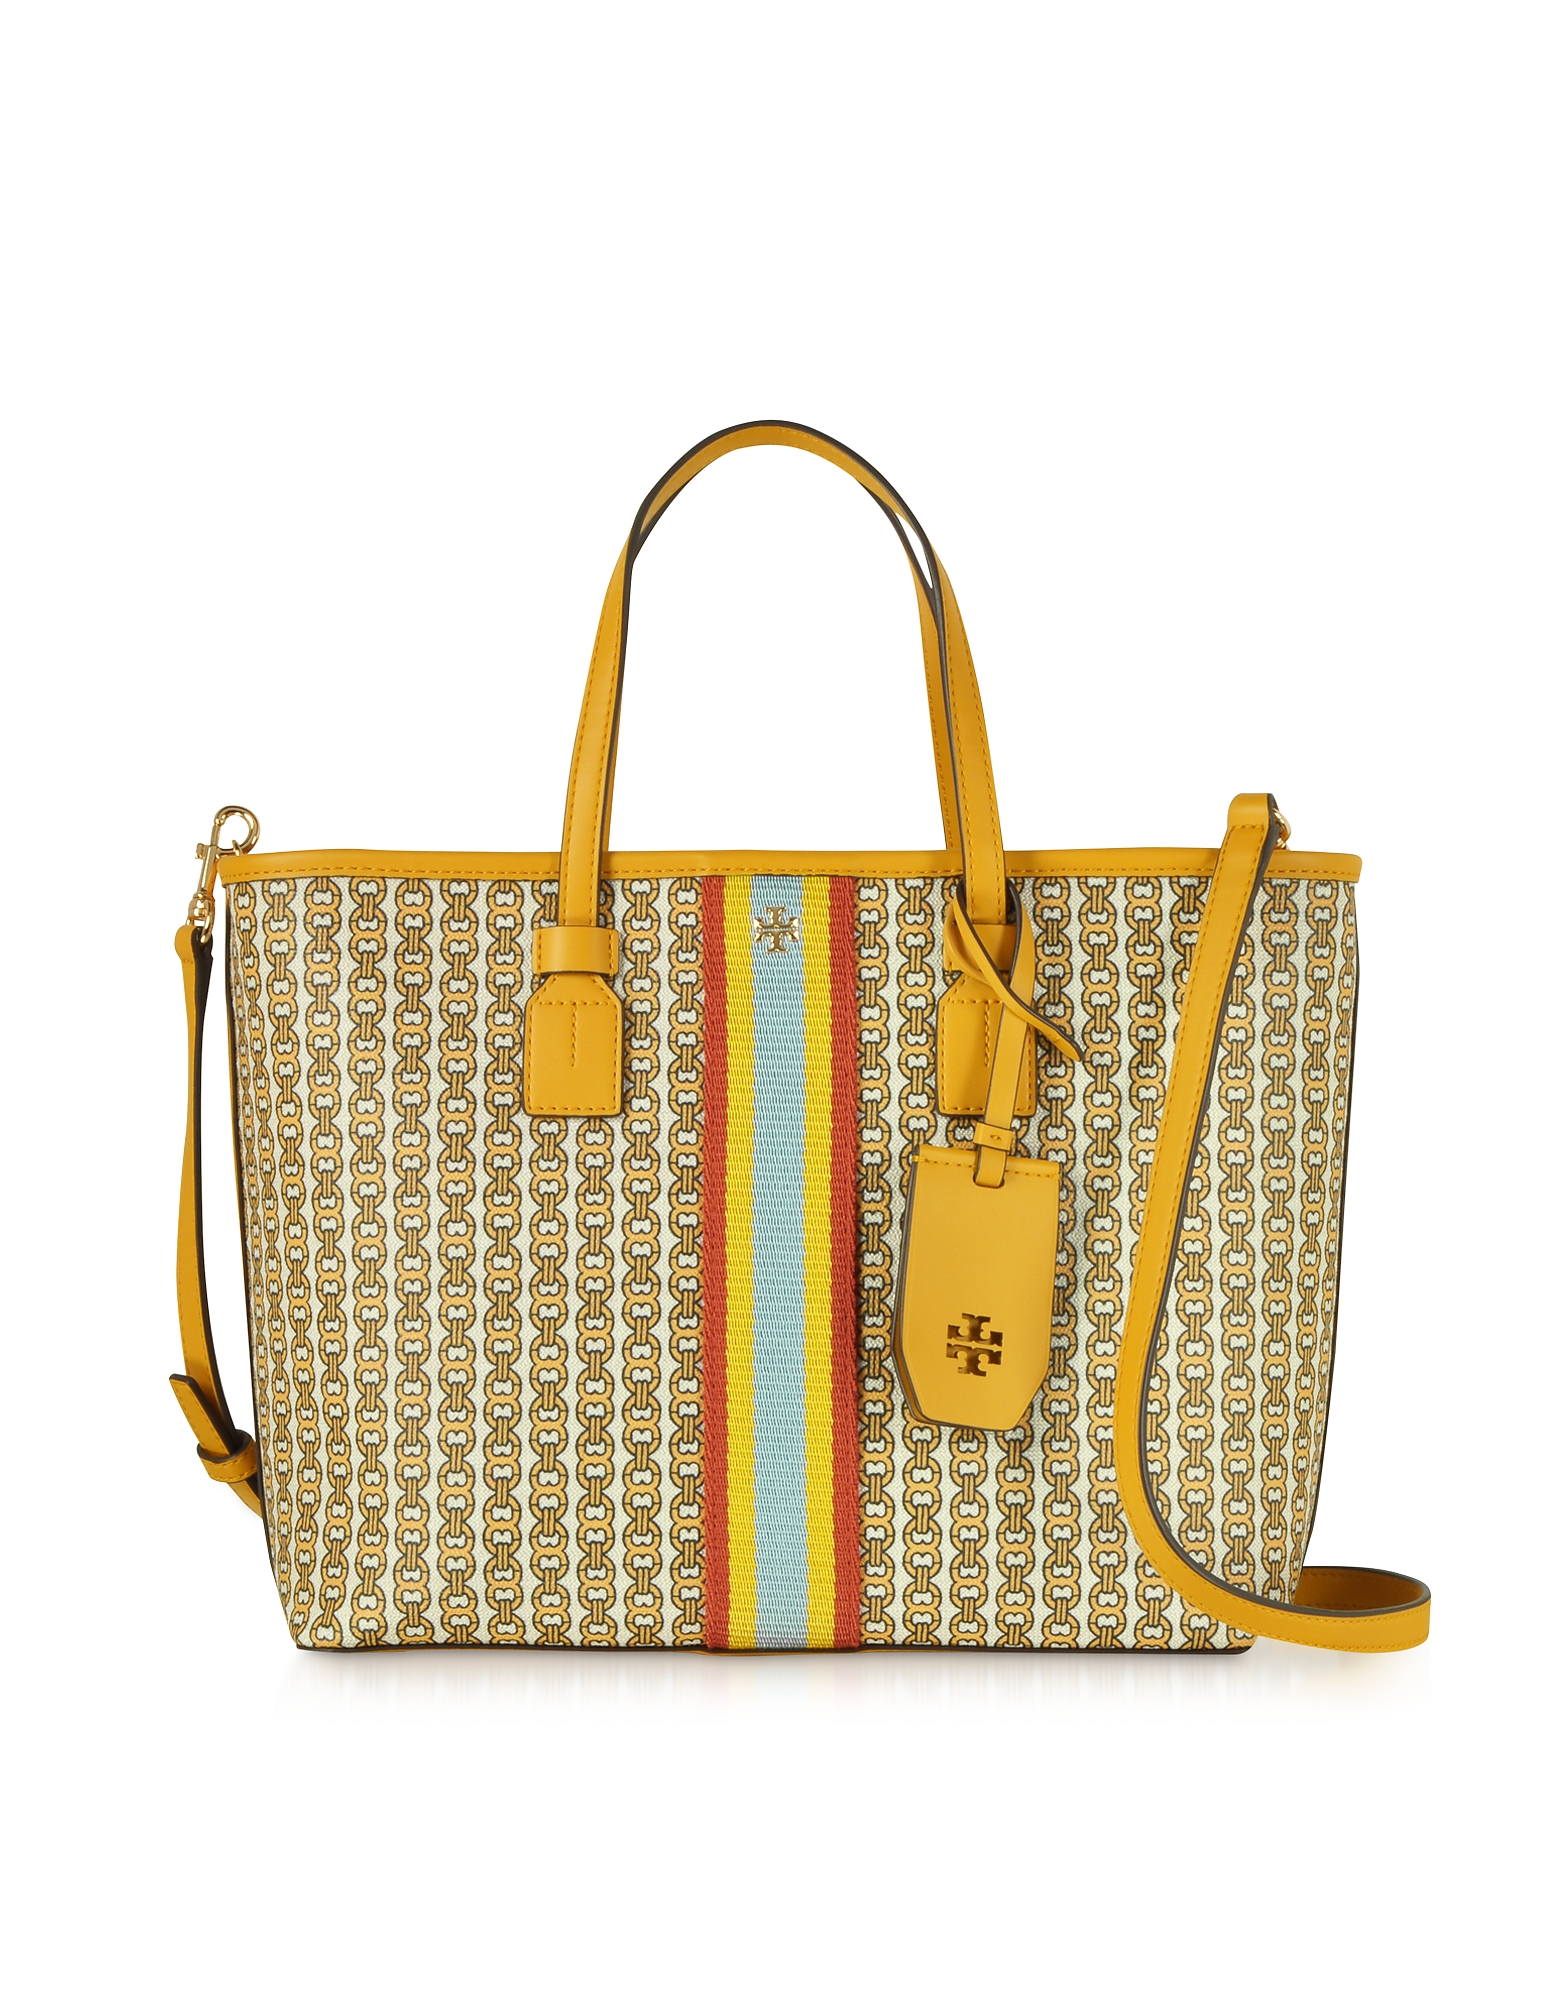 d96fd3fad423 Tory Burch Gemini Link Coated Canvas Small Tote Bag In Yellow